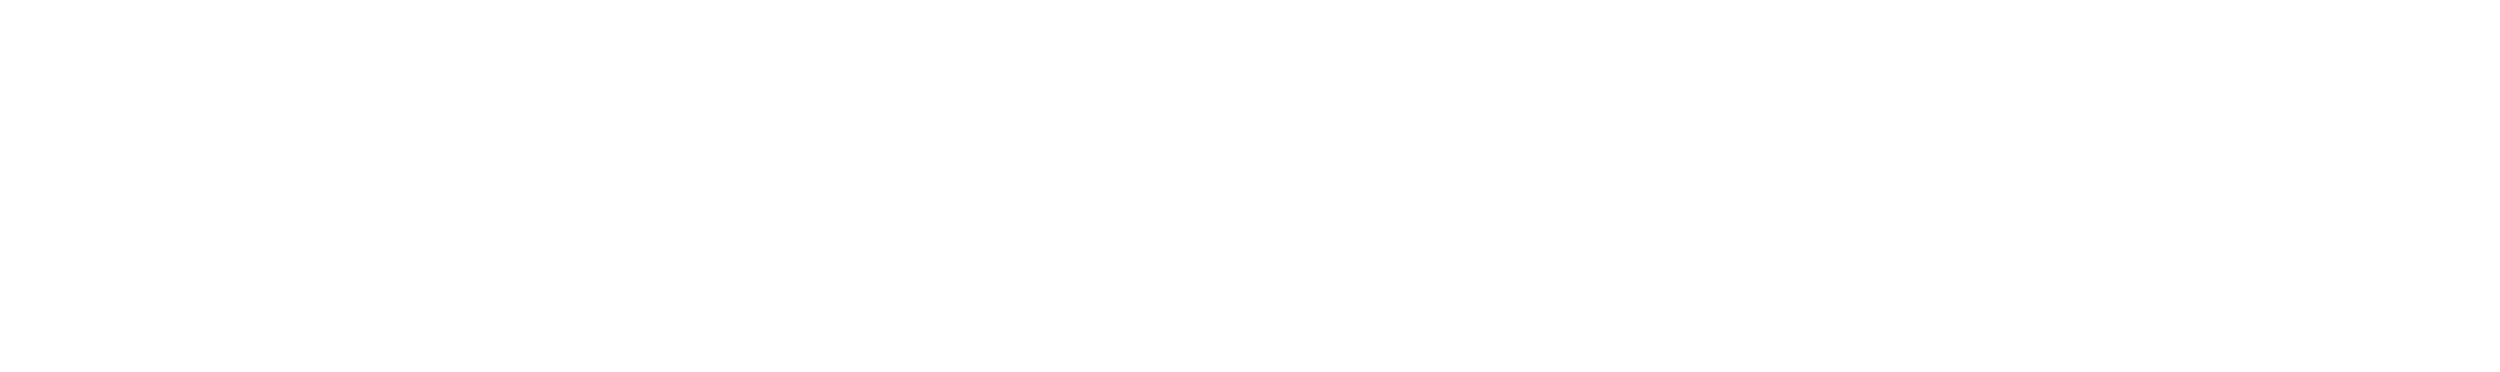 GoodFoodMakers, LogoWht R3.png